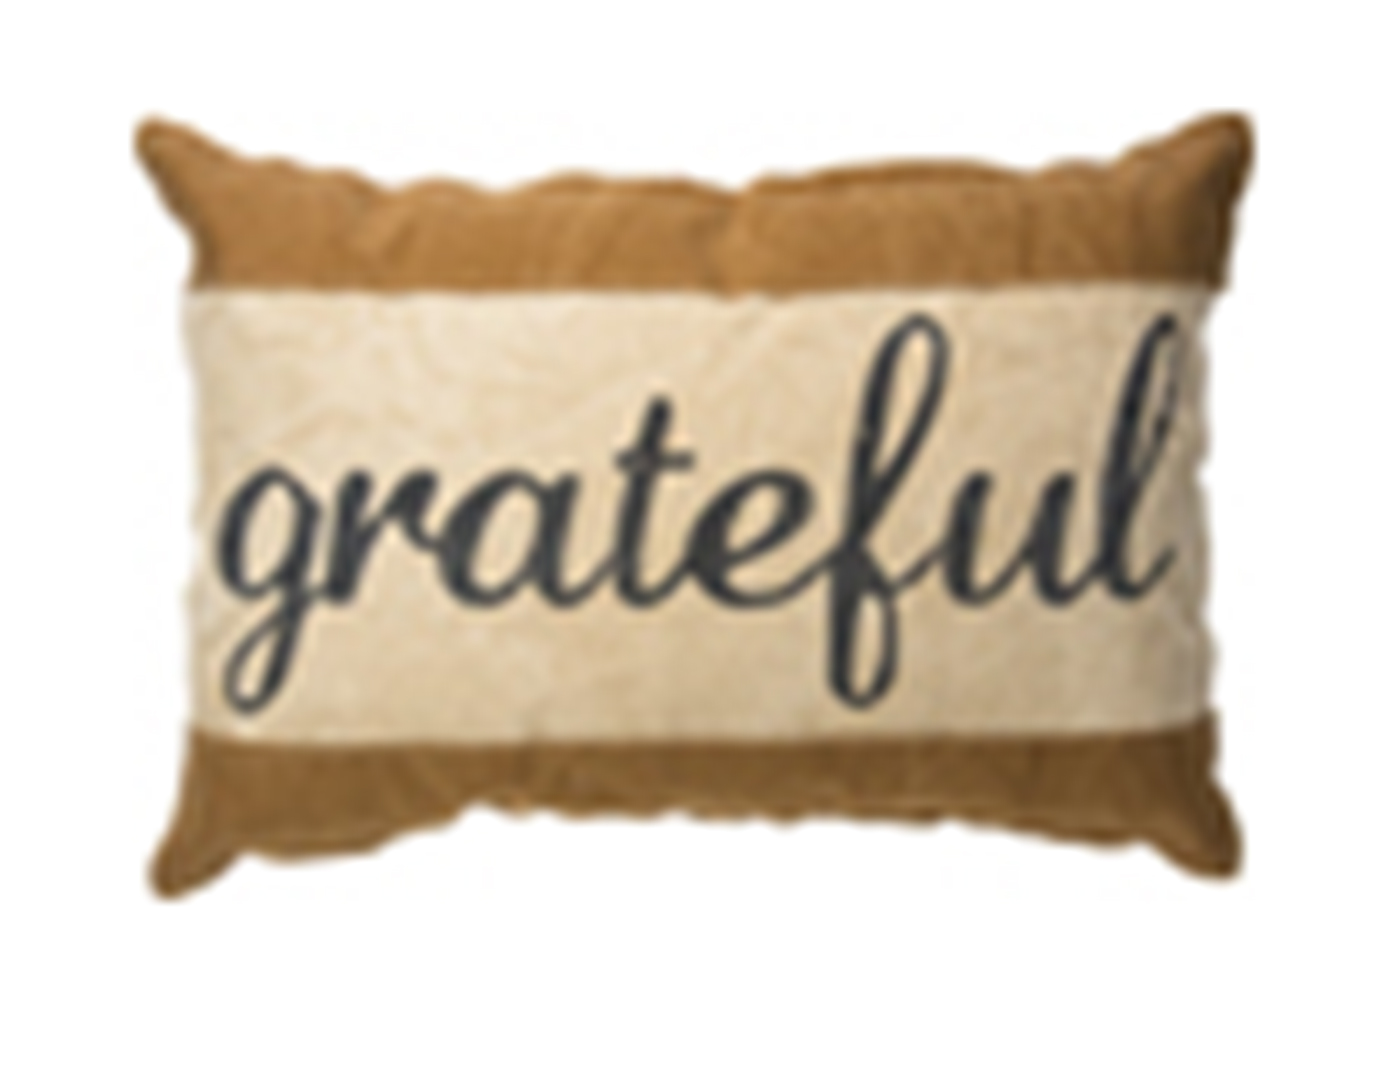 Grateful Pillow